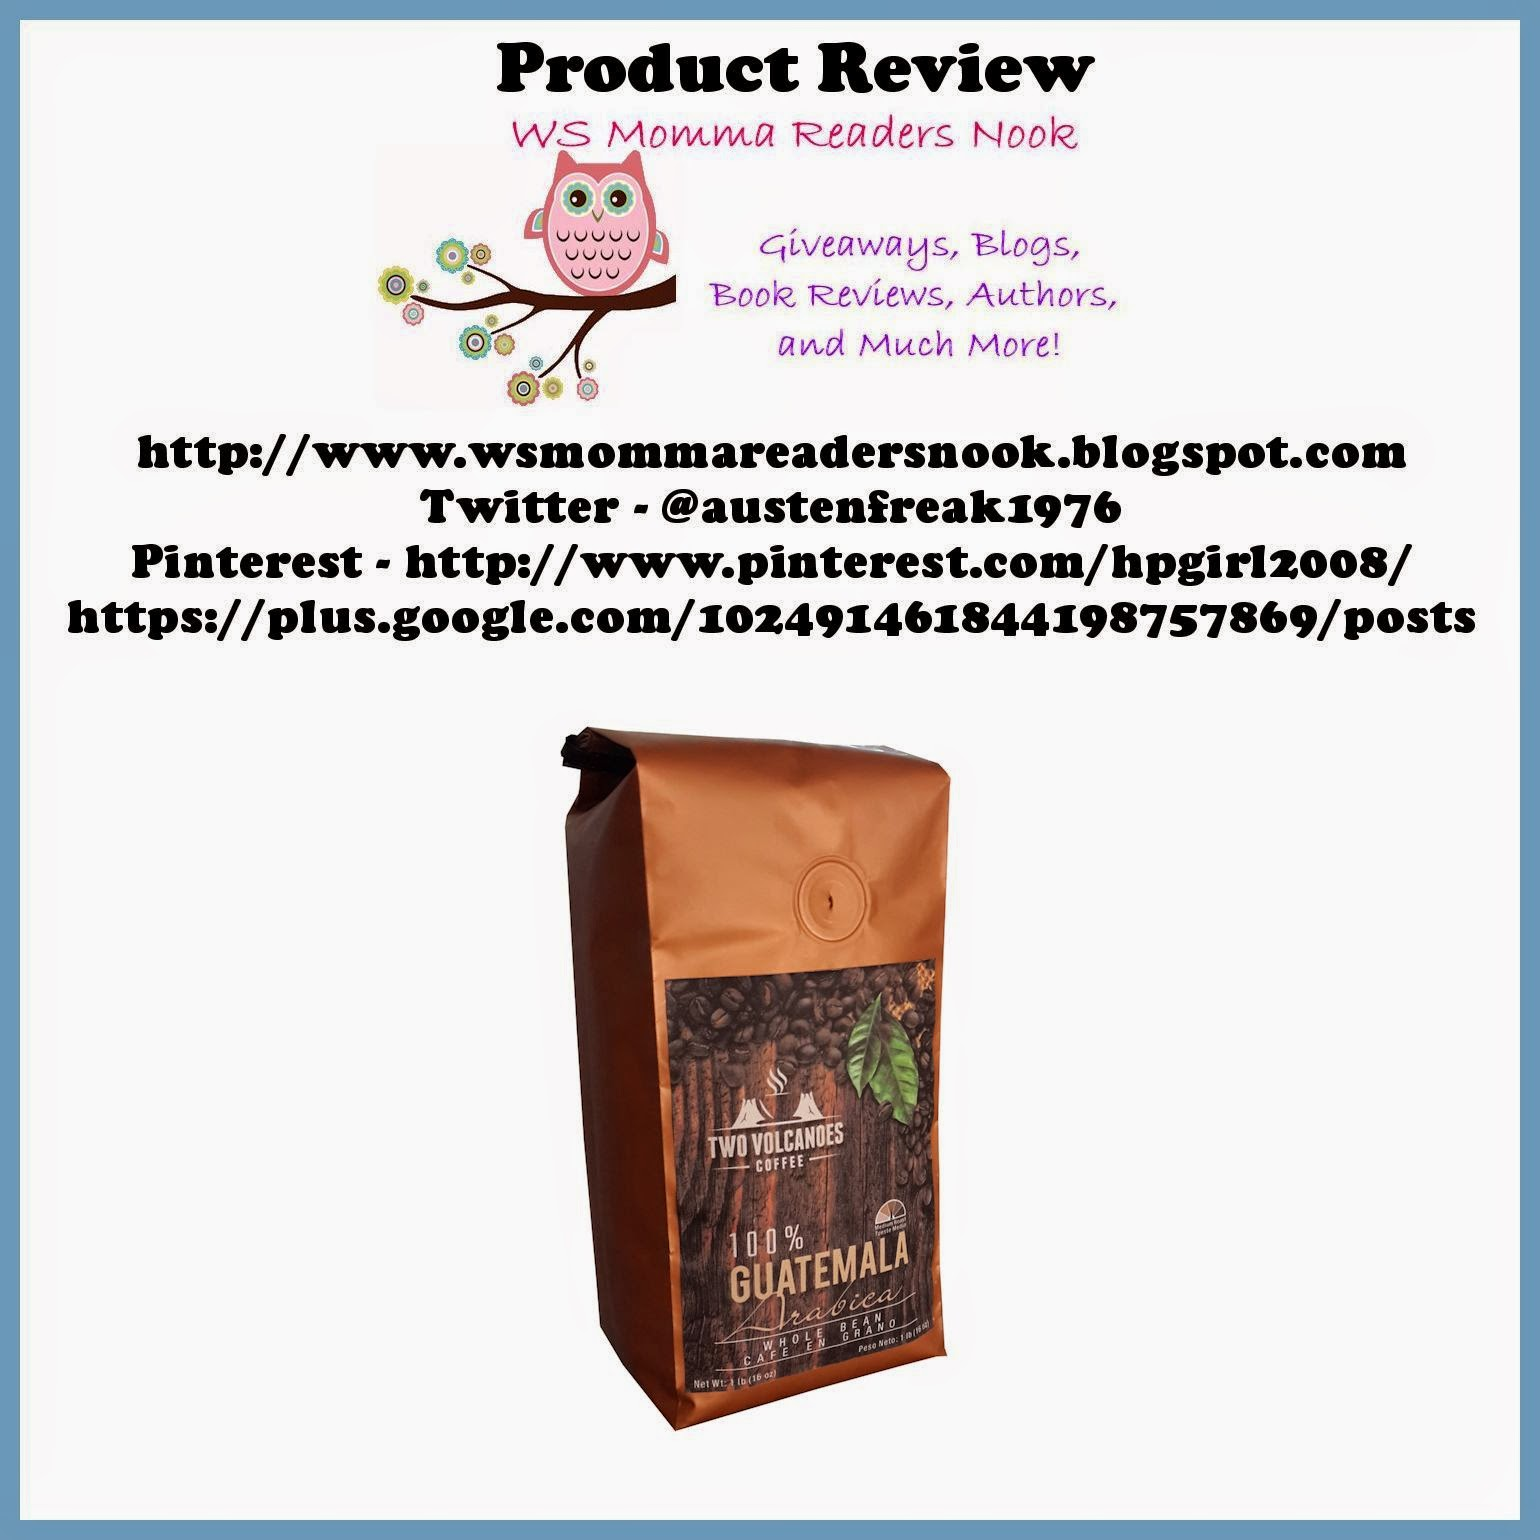 http://www.amazon.com/Two-Volcanoes-Whole-Bean-Coffee/dp/B00NX2BYFW/ref=sr_1_25?ie=UTF8&qid=1418343939&sr=8-25&keywords=whole+bean+coffee